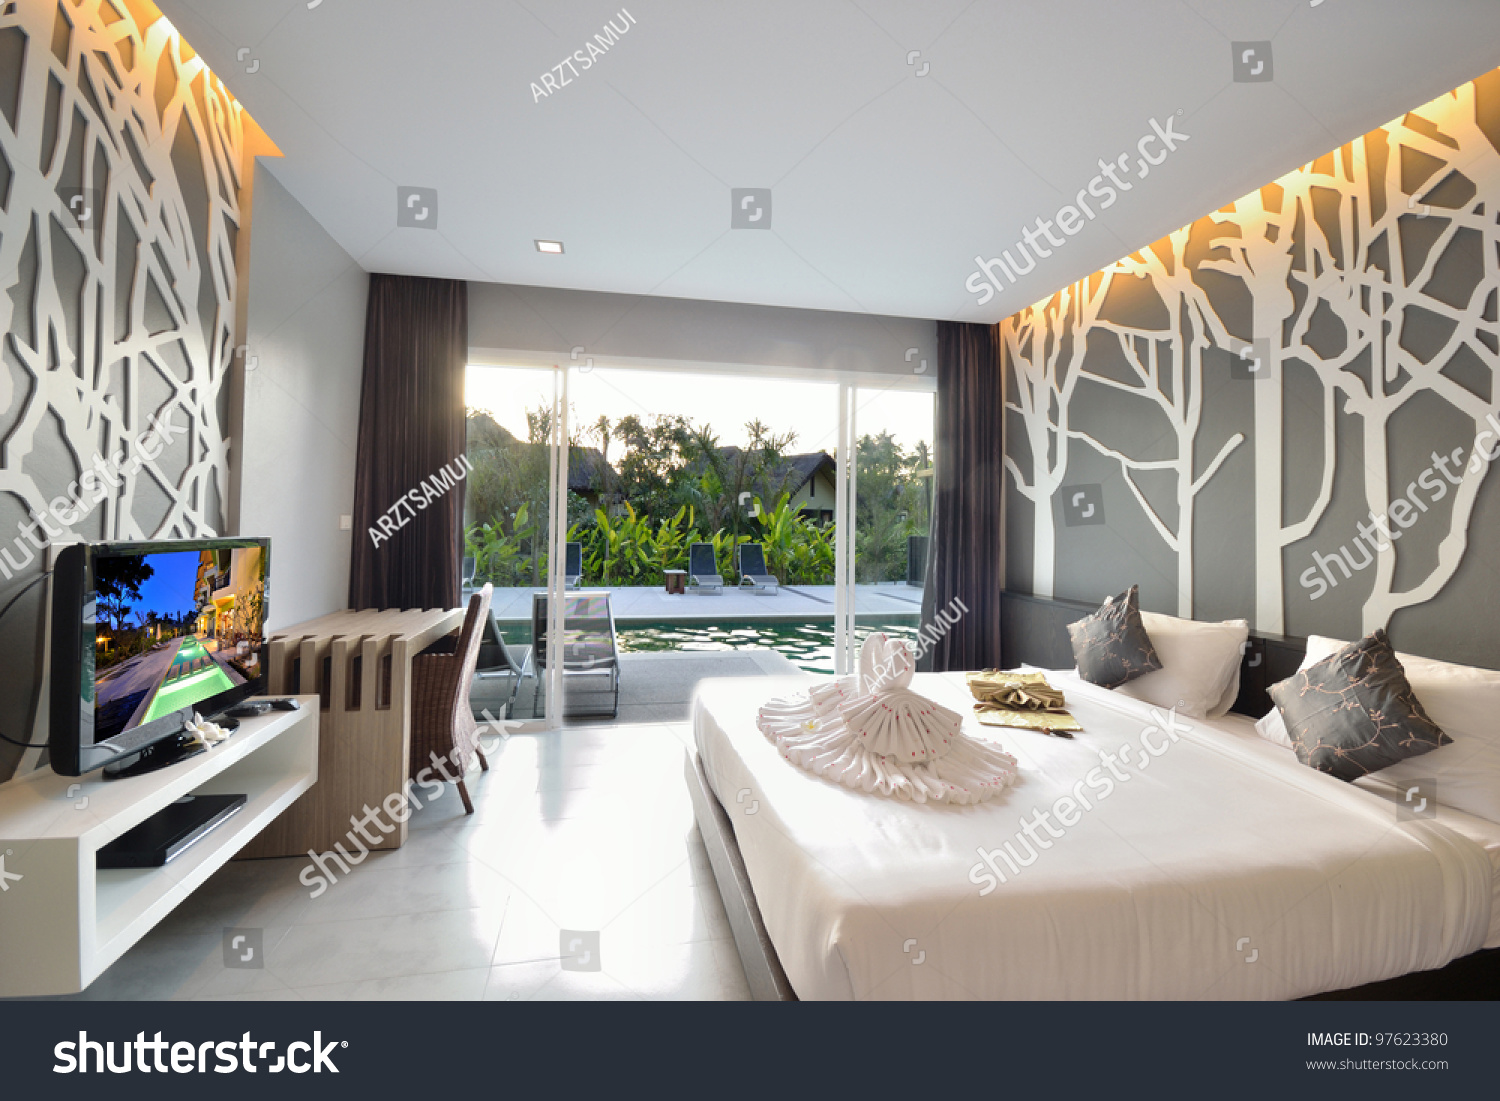 Related Keywords Suggestions For Luxury Bedroom Interior